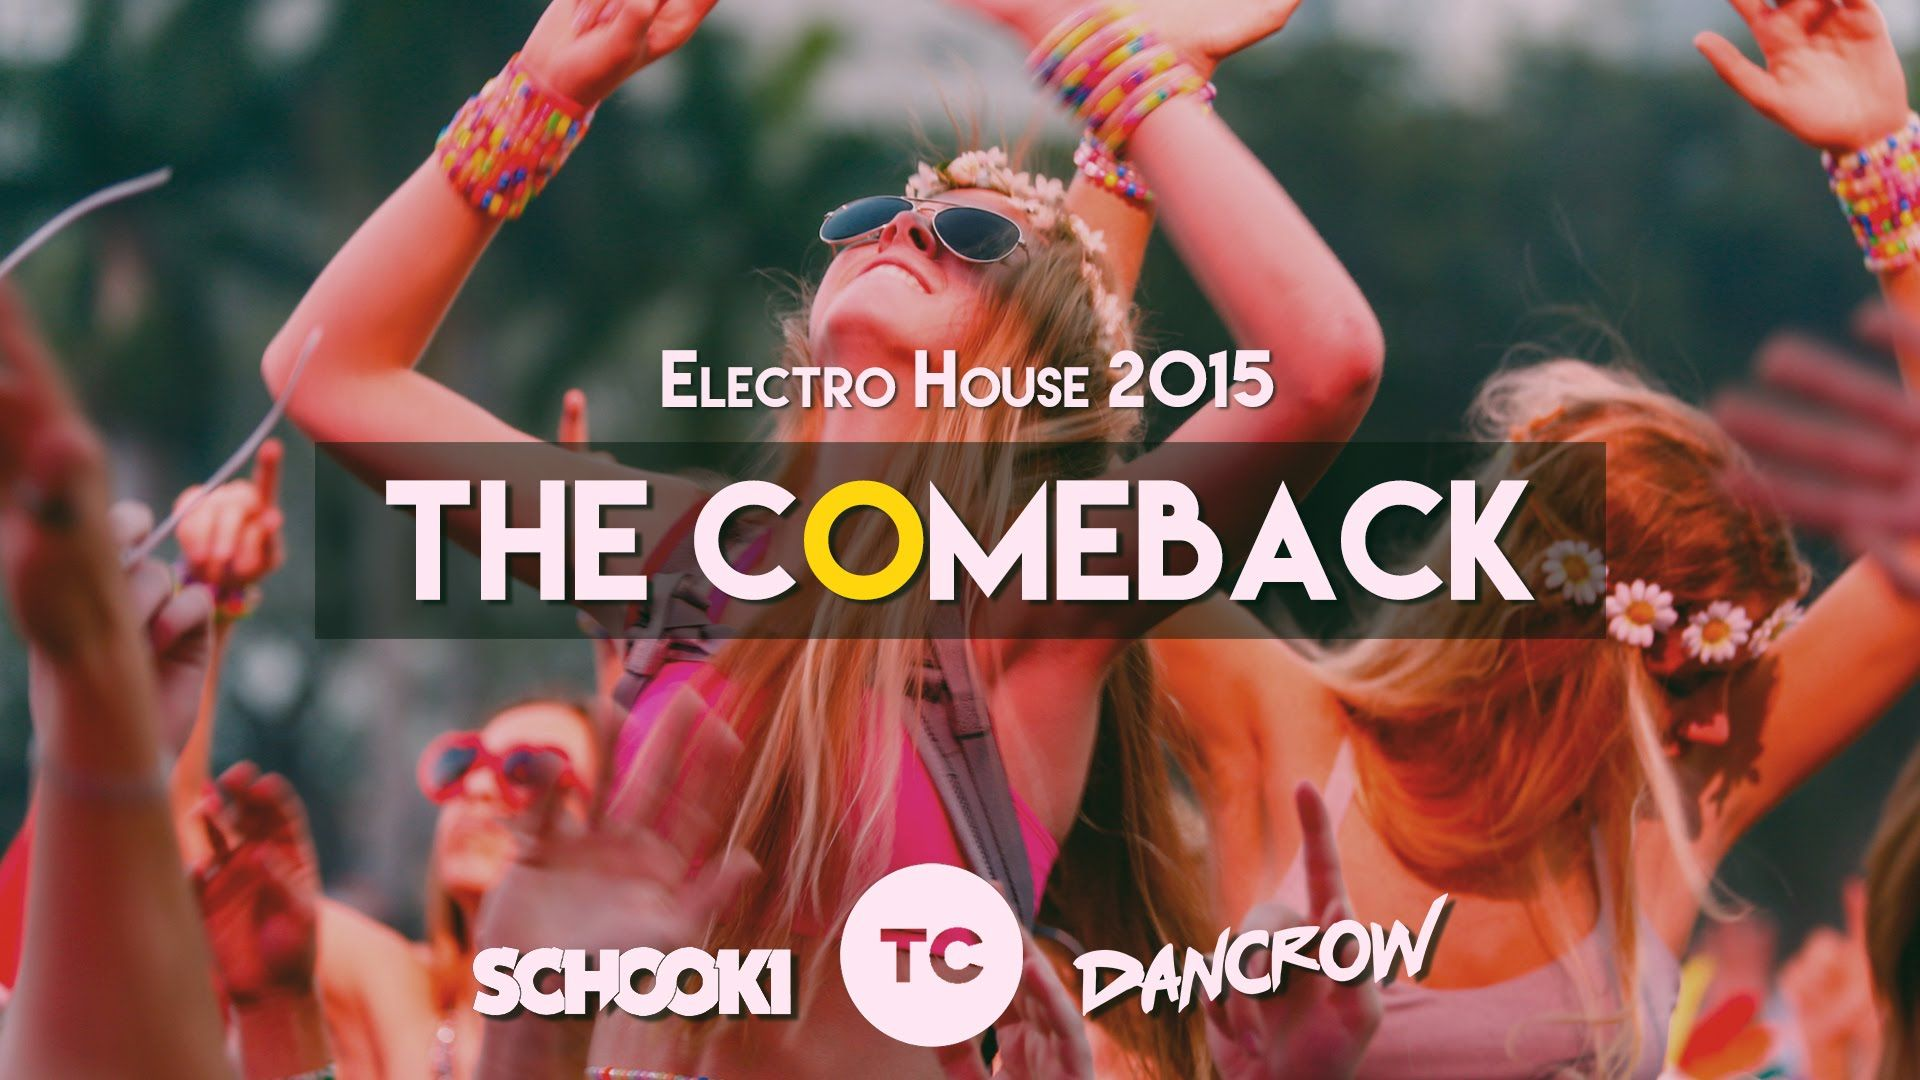 NEW BEST ELECTRO HOUSE 2015 DANCE MUSIC MIX - The Comeback